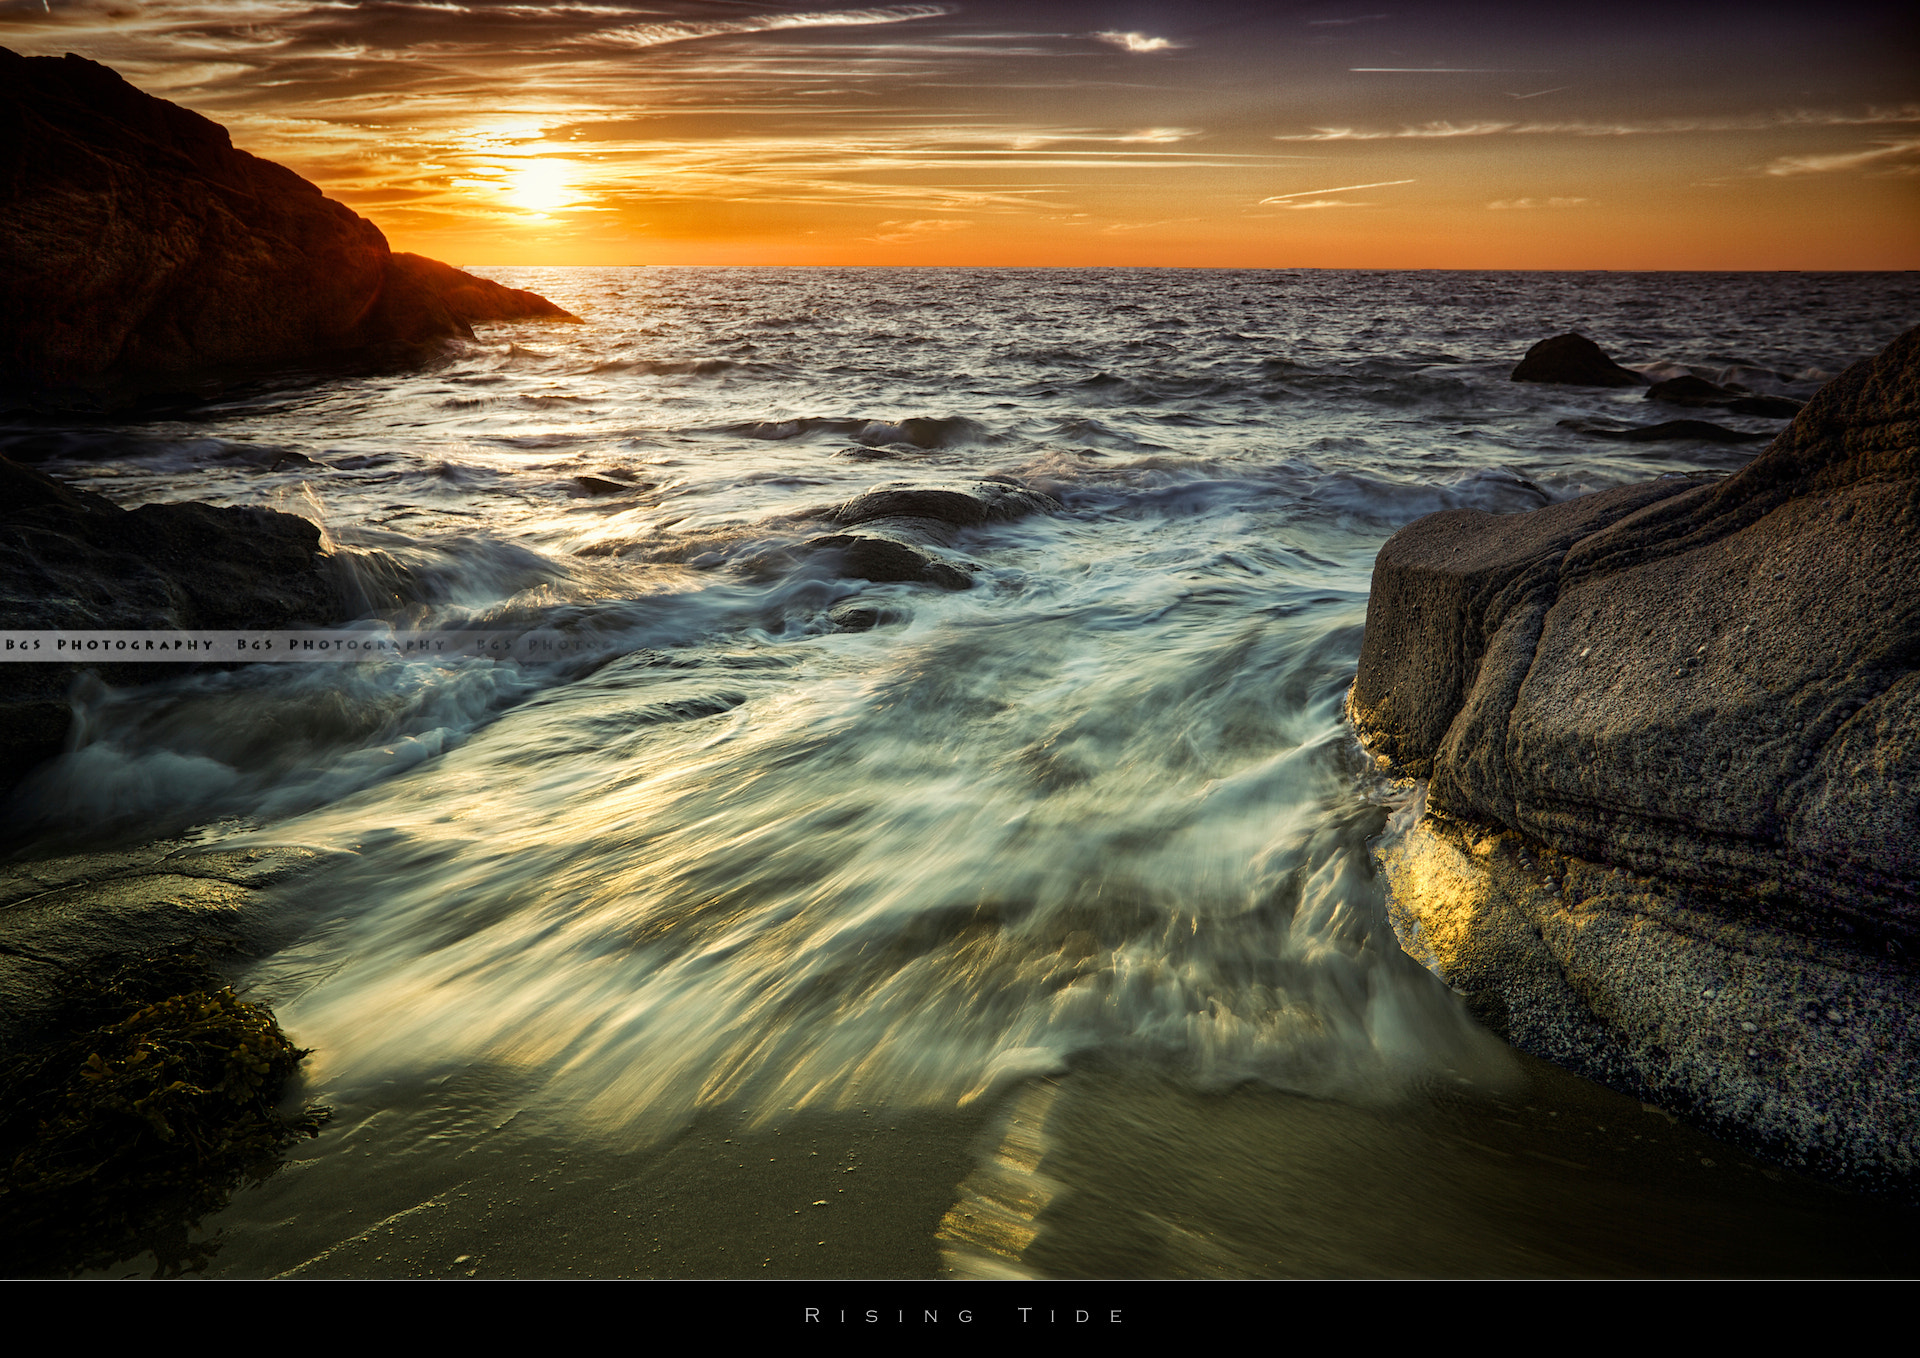 Photograph Rising Tide by Benjamin gs on 500px